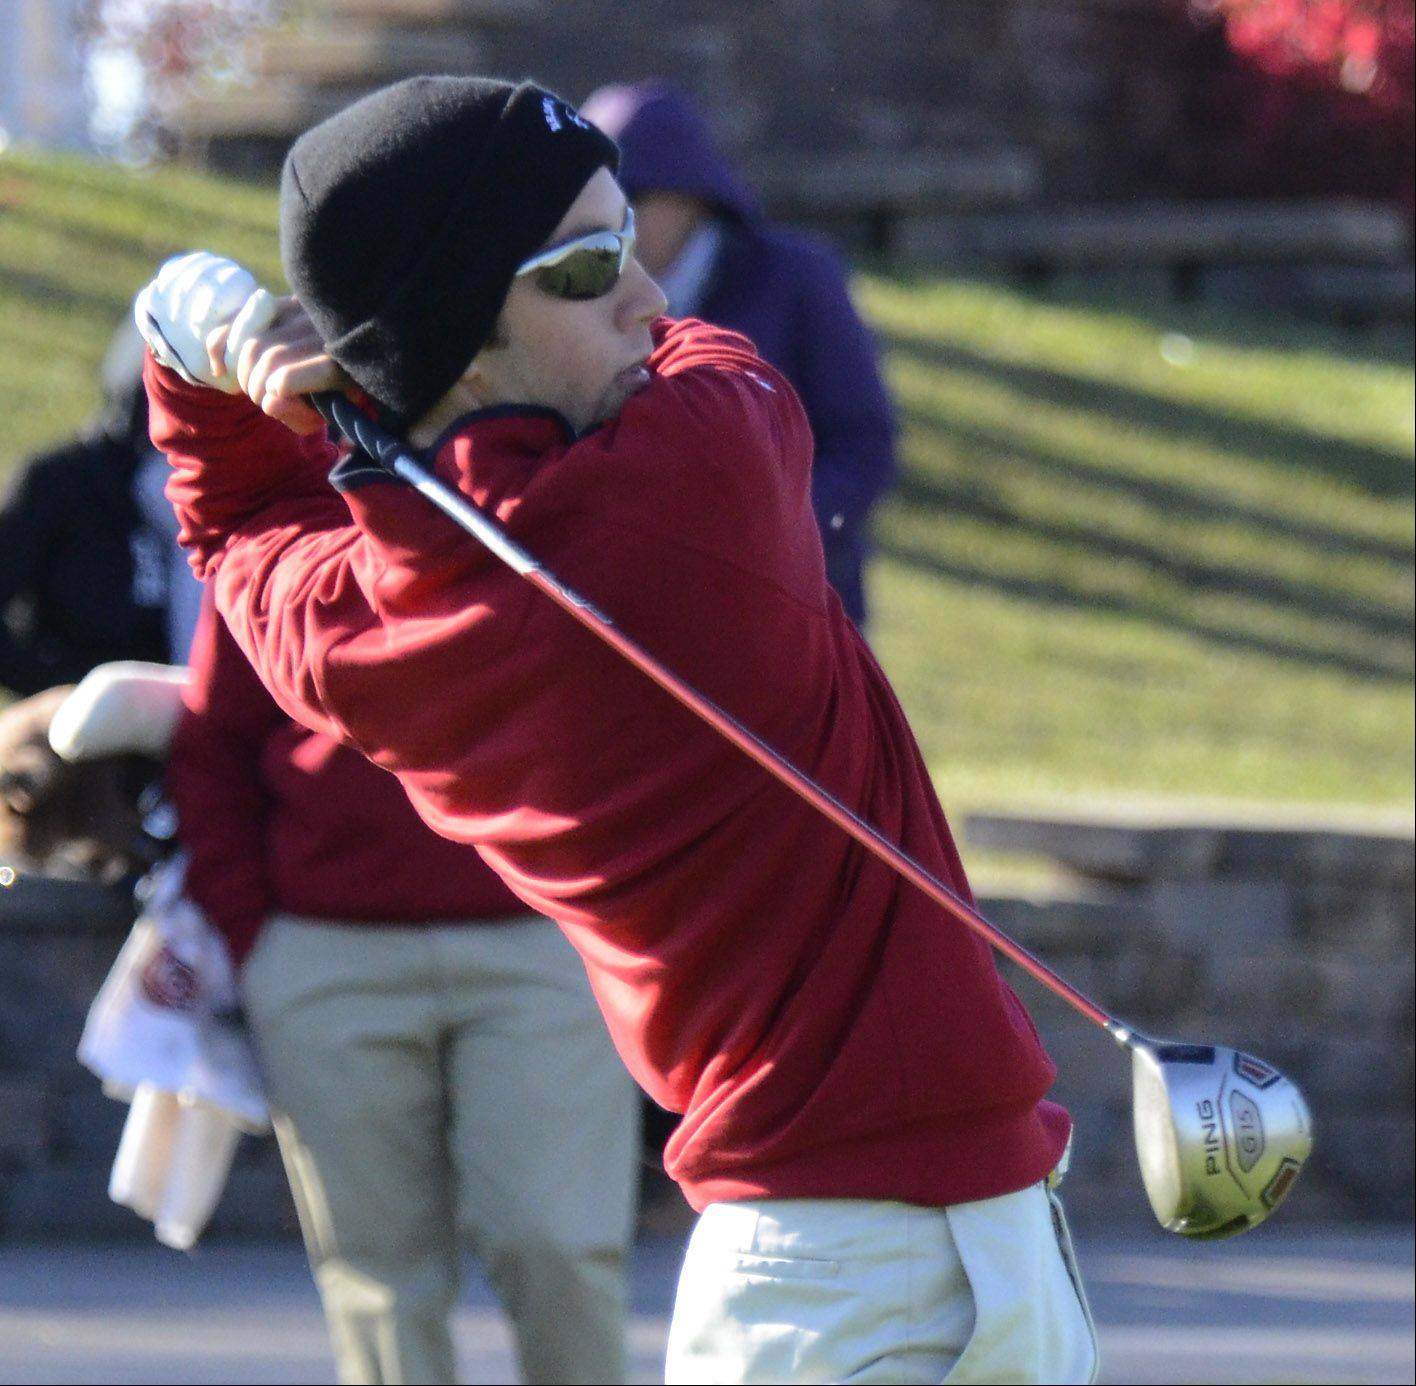 Barrington's Garrett Danelz drives at the 10th tee Monday at the Barrington sectional at Makray Memorial Golf Course.